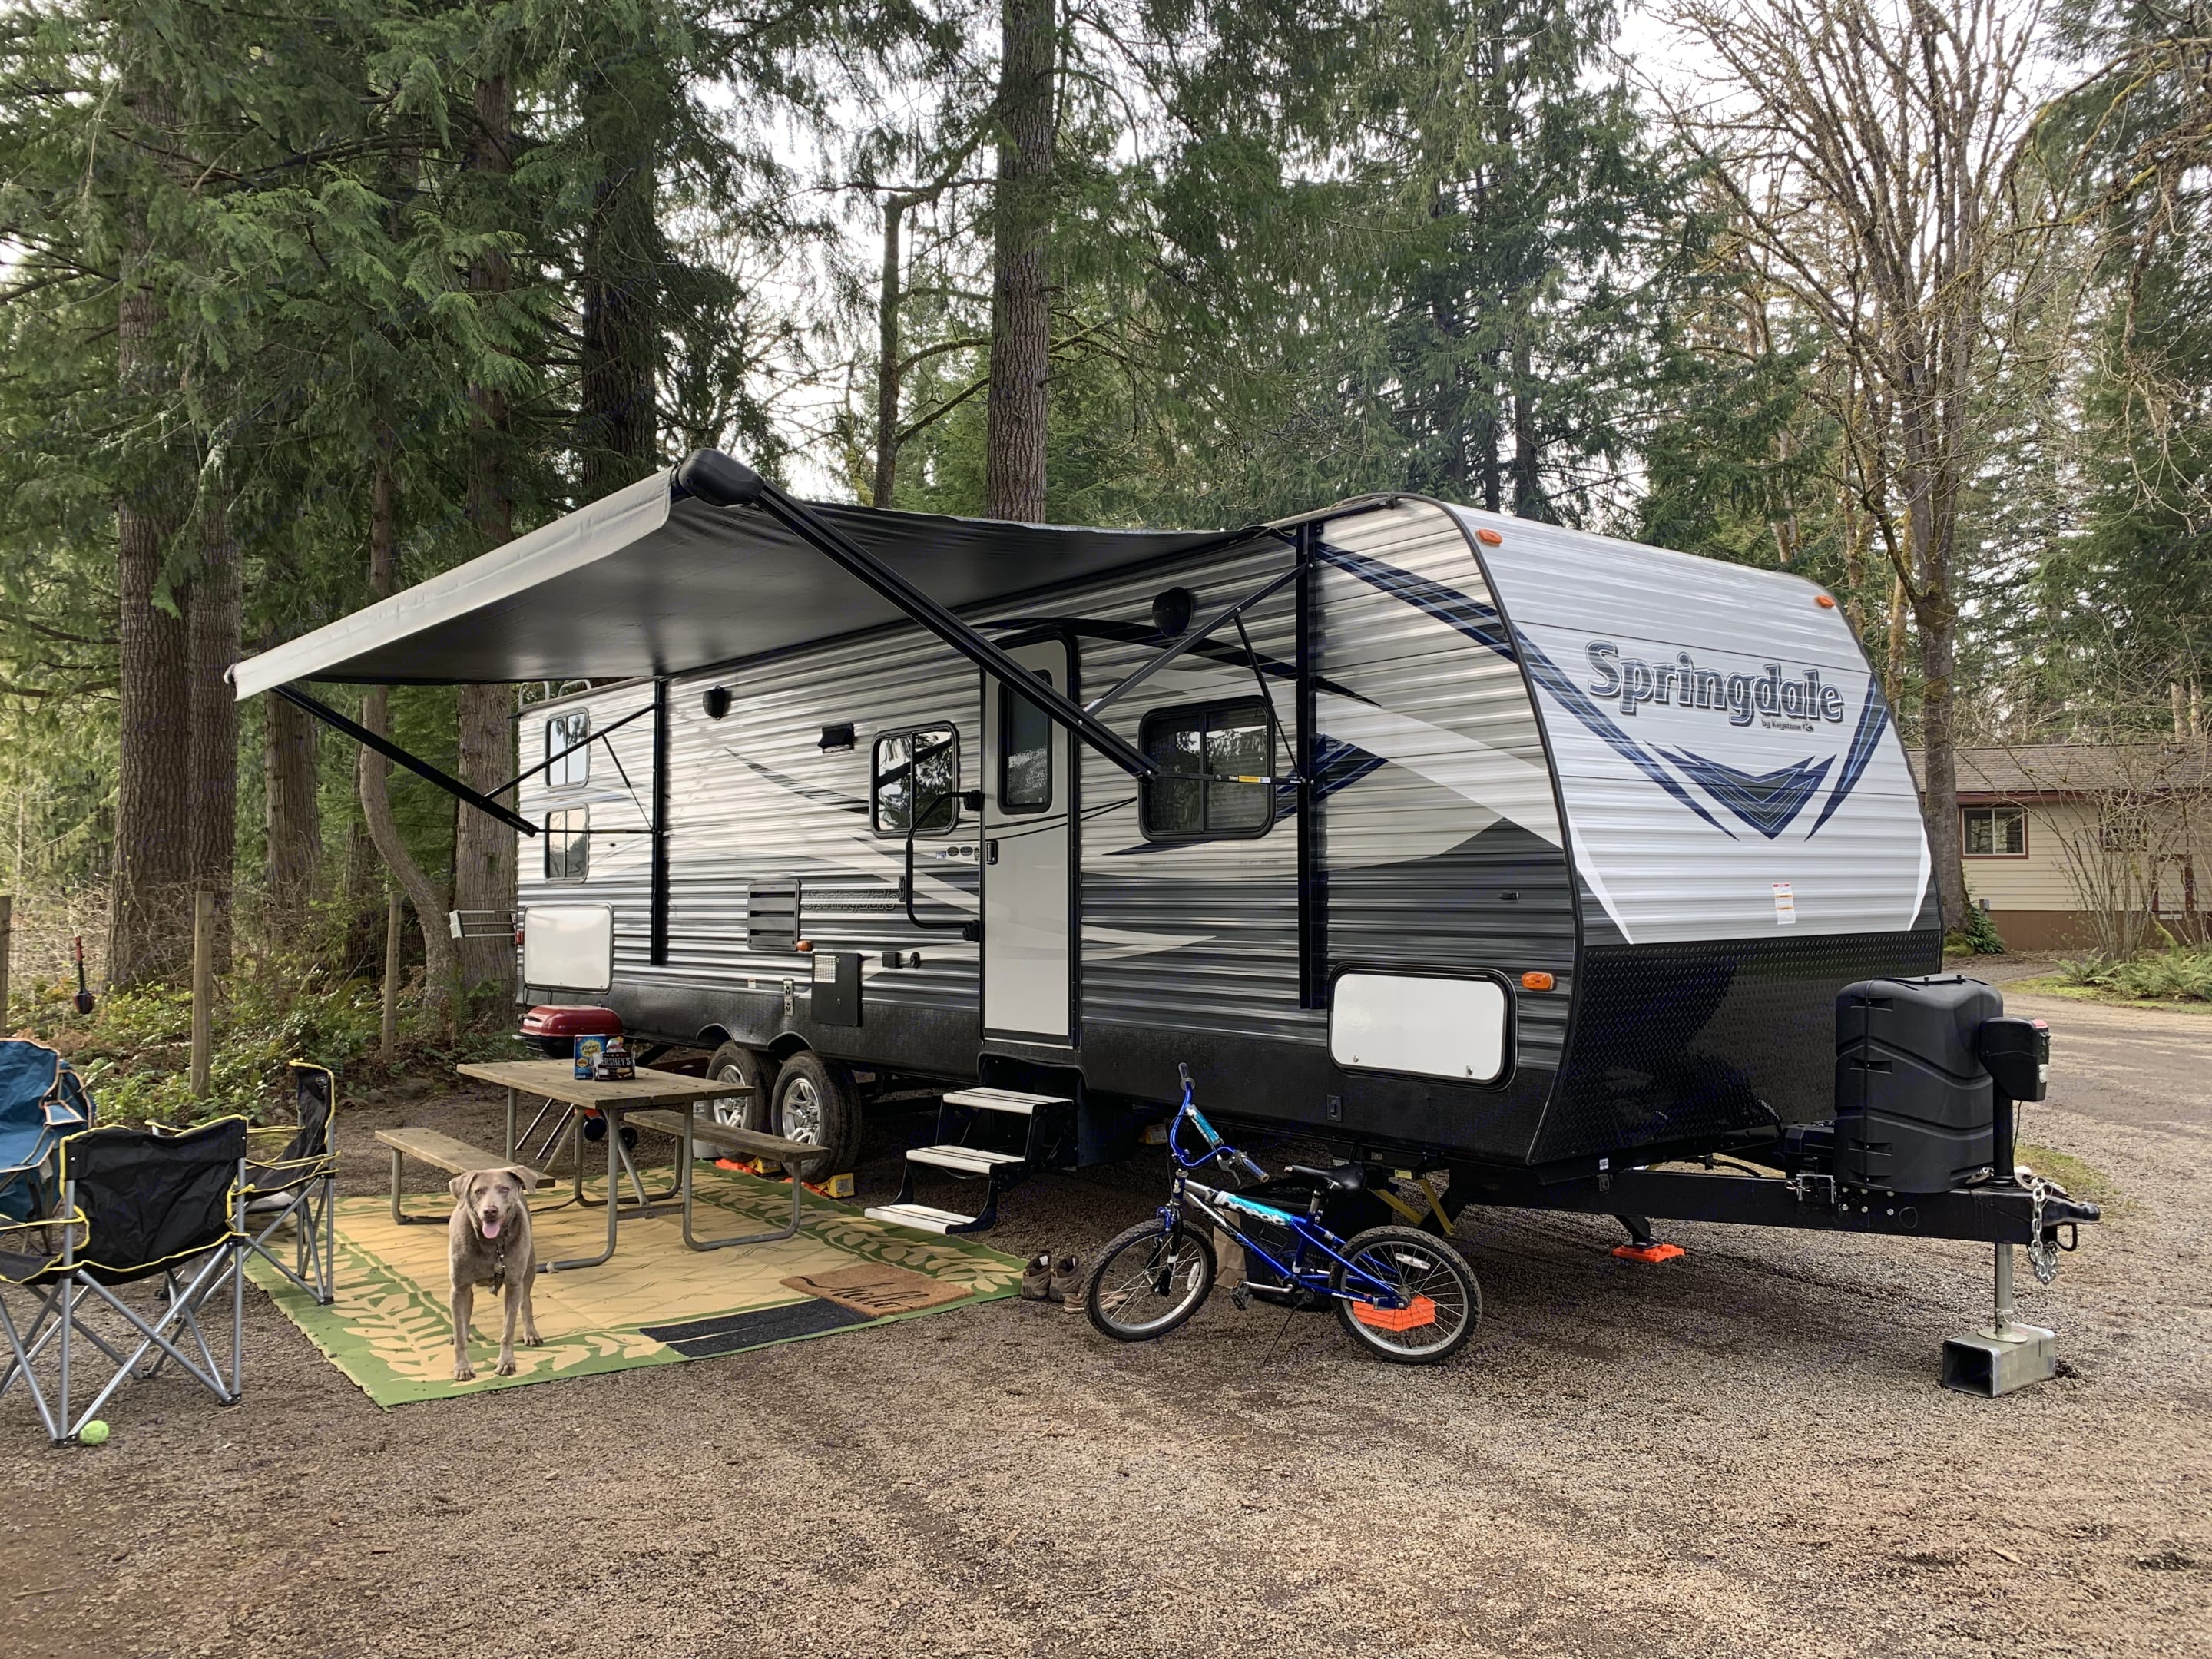 All set up at a campsite, ready to have a great time!. Keystone Springdale 2018